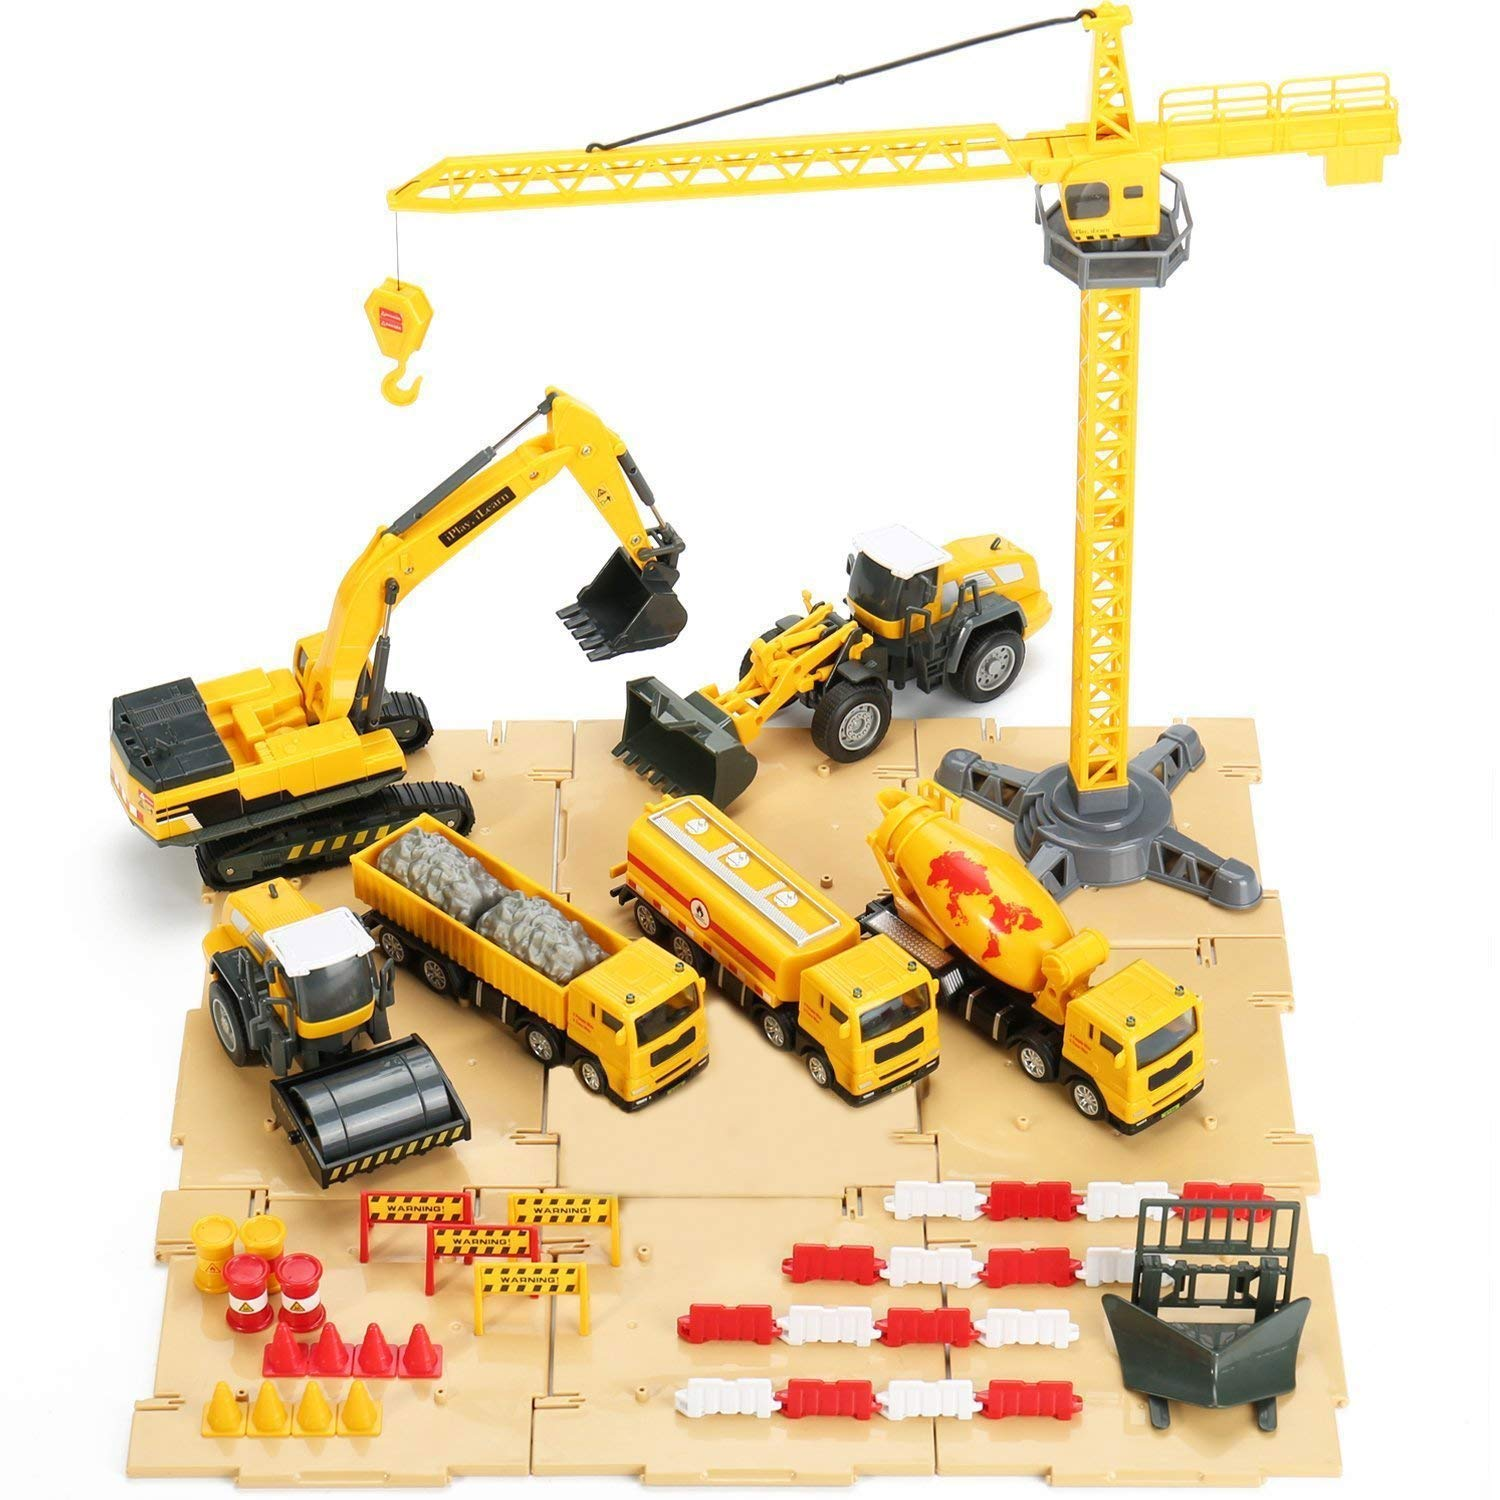 iPlay, iLearn Construction Site Vehicles Toy Set, Engineering Play-Set, Tractor, Digger, Crane, Dump Trucks, Excavator, Cement, Steamroller for 3, 4, 5 Year Old Toddlers, Boys, Girls, Kids & Children